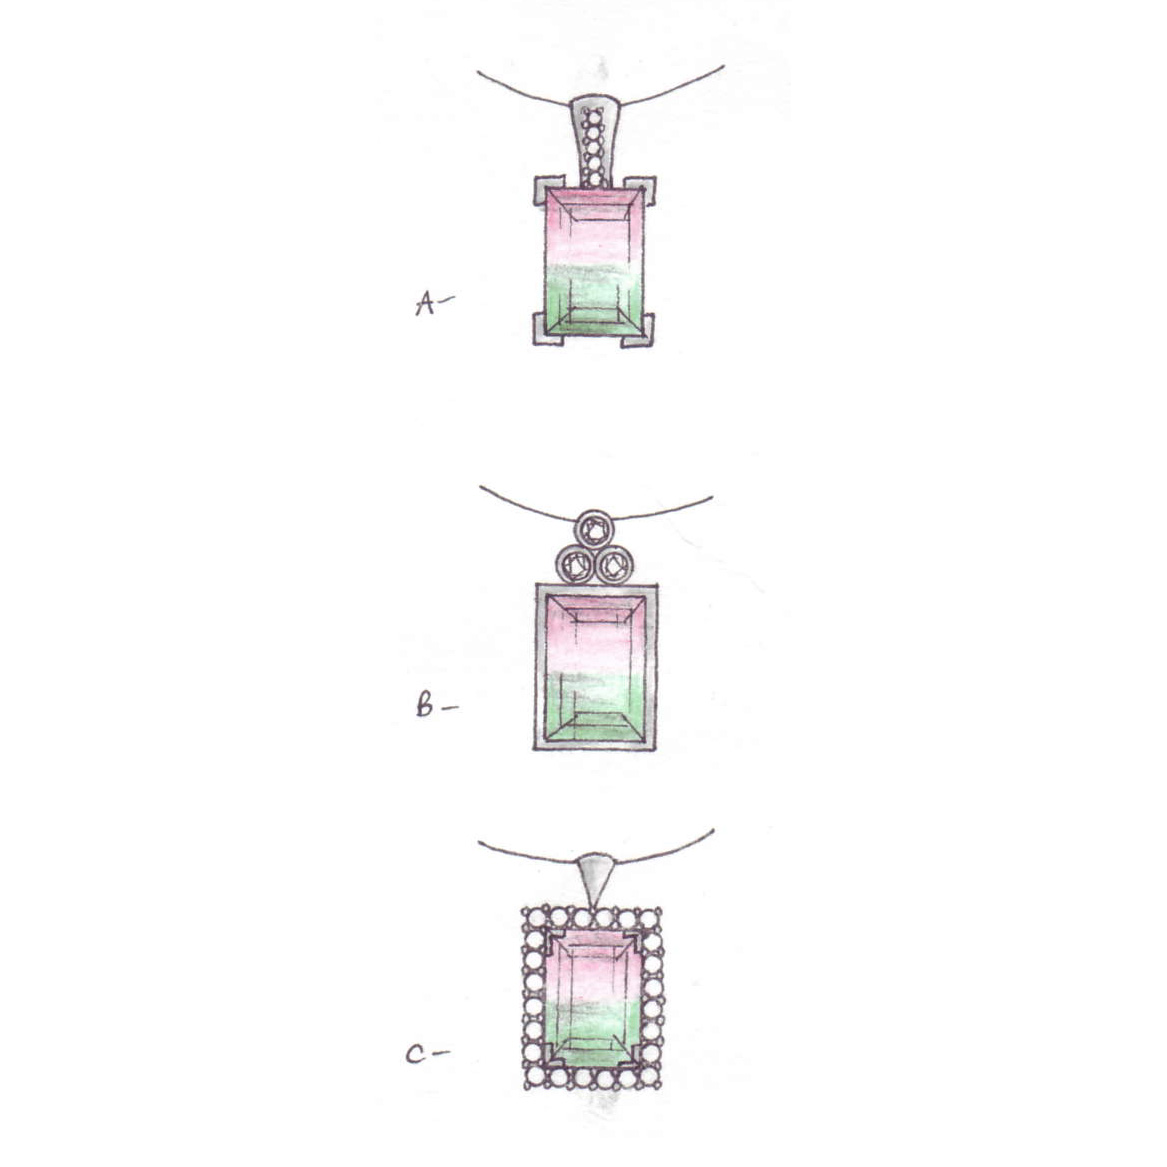 Watermelon tourmaline design sketches On Sally Thornton Jewellery Blog from Thorntons Jewellers Kettering Northampton